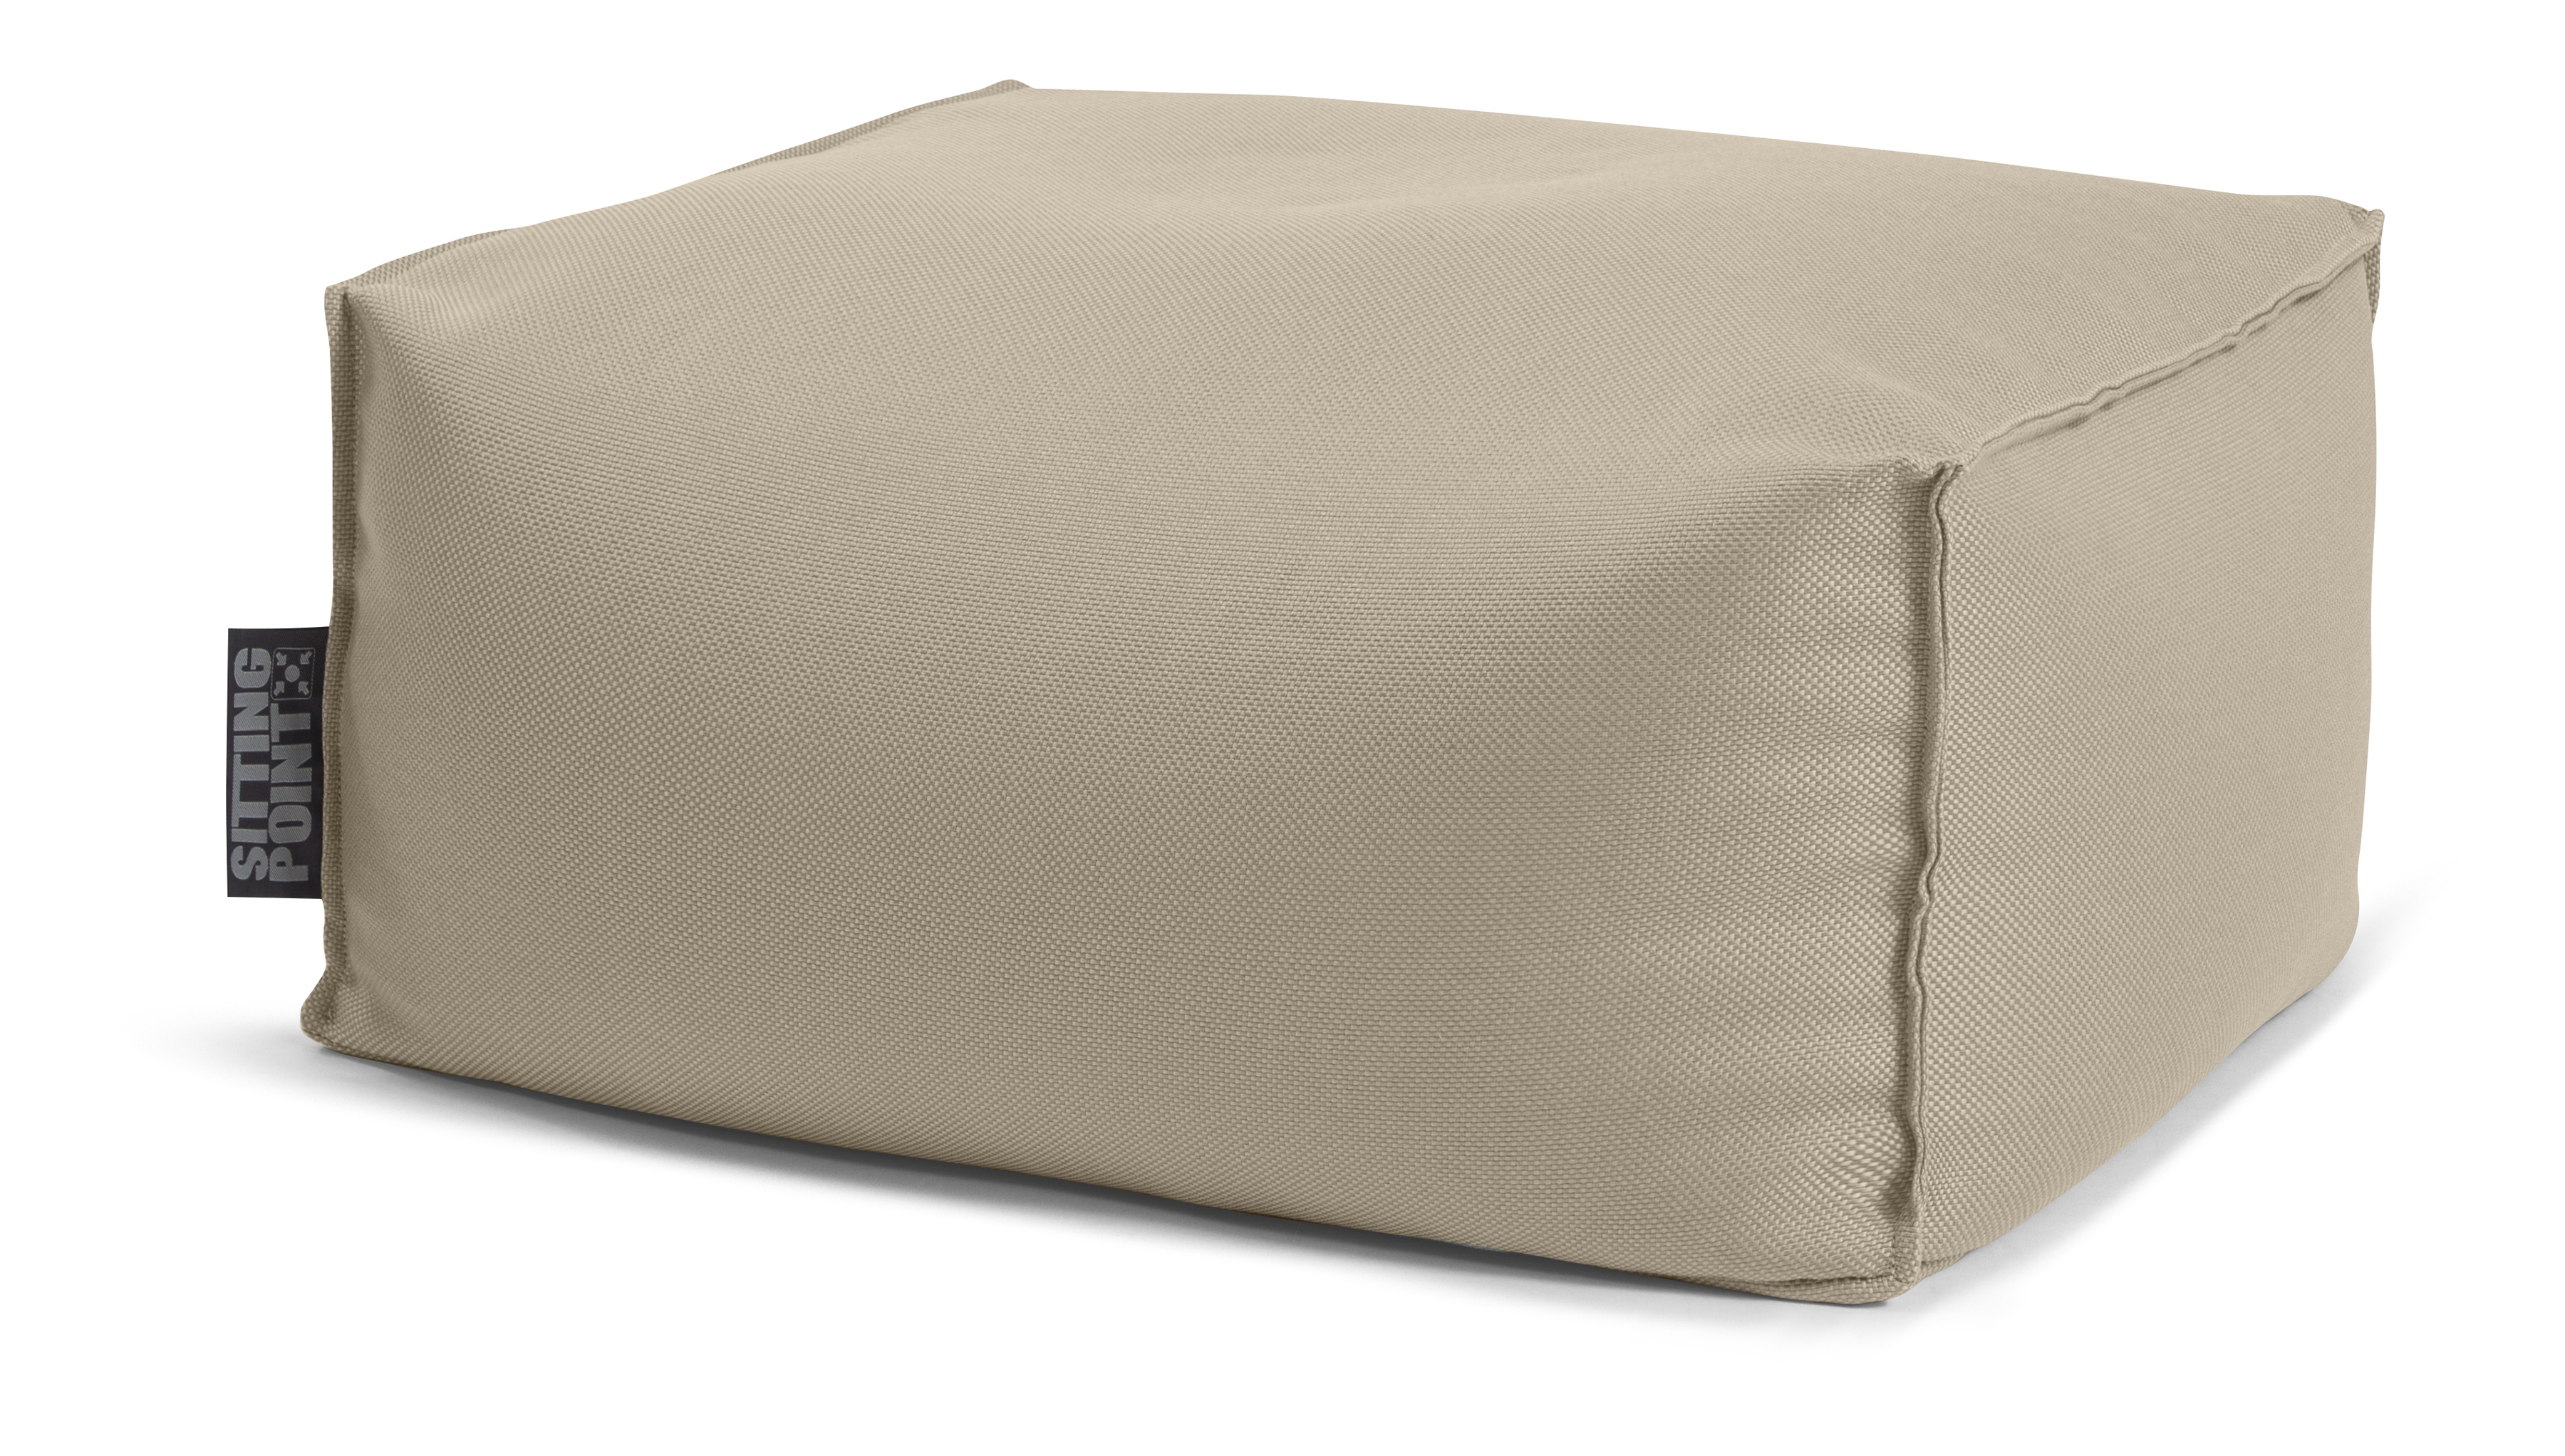 Pouf repose-pieds outdoor taupe 55x65x35